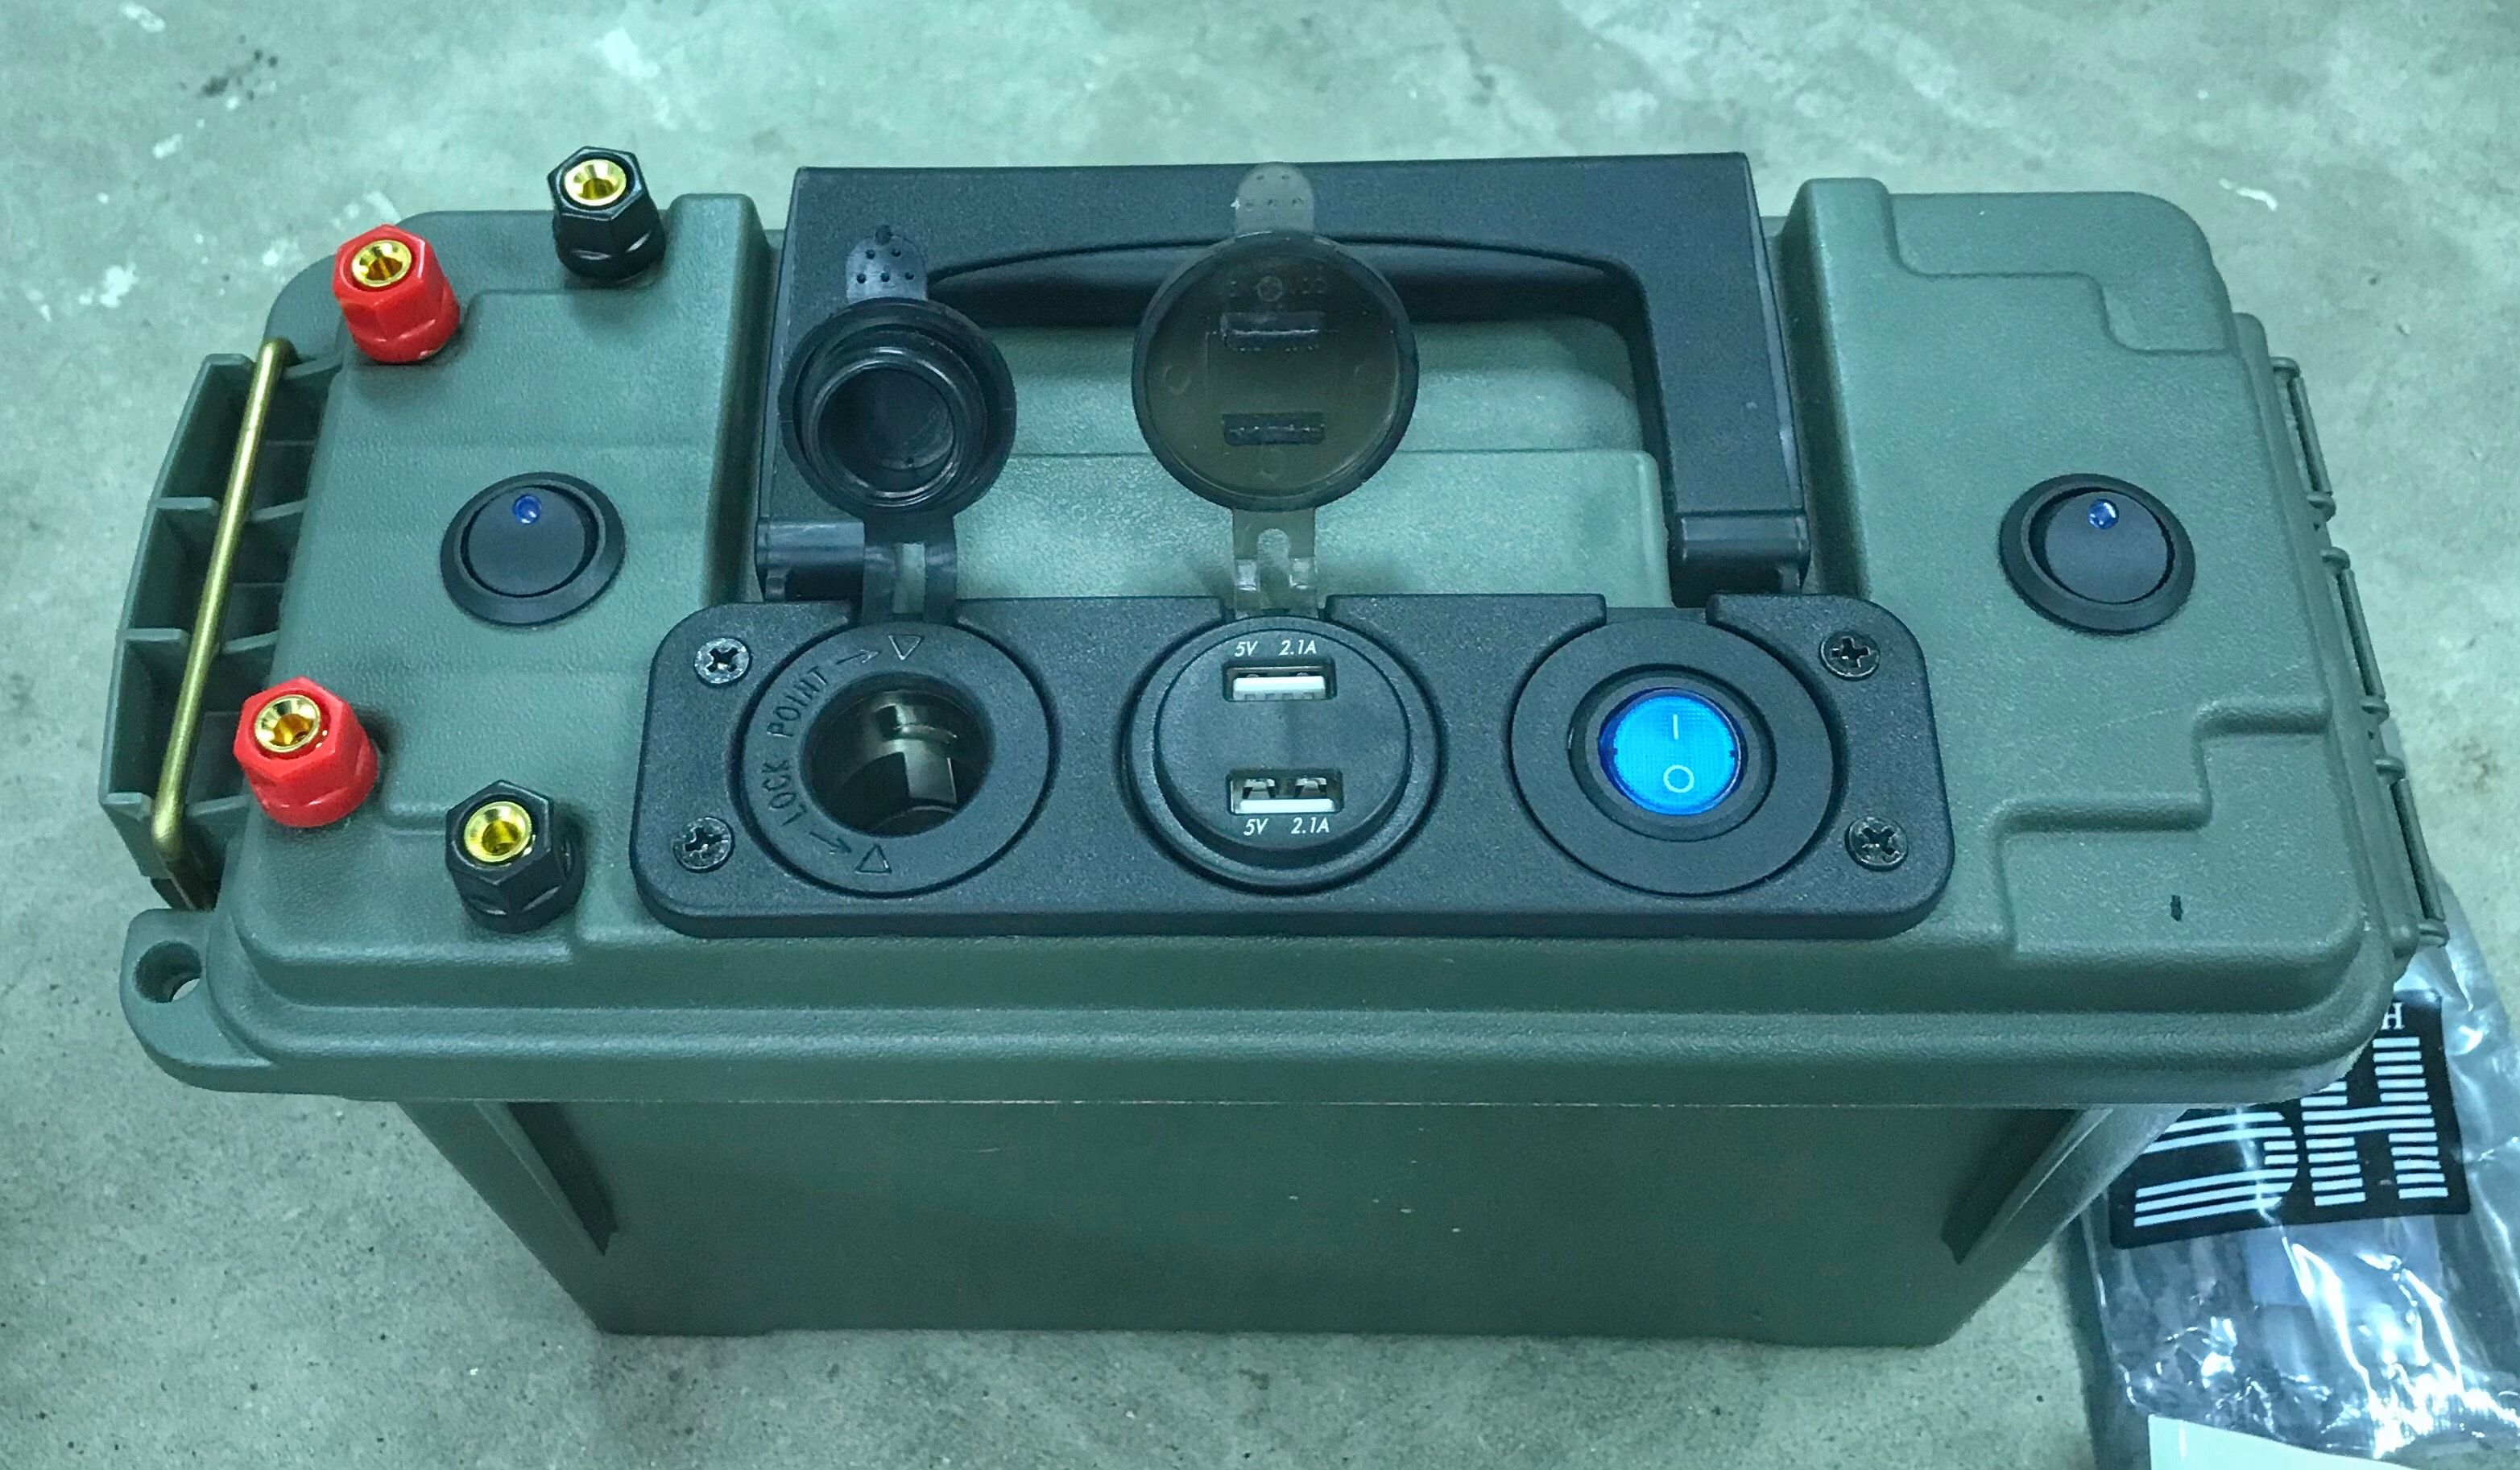 small resolution of 12 volt battery box volt meter illuminates between usb plugs left switch controls posts right switch controls leds mounted on side